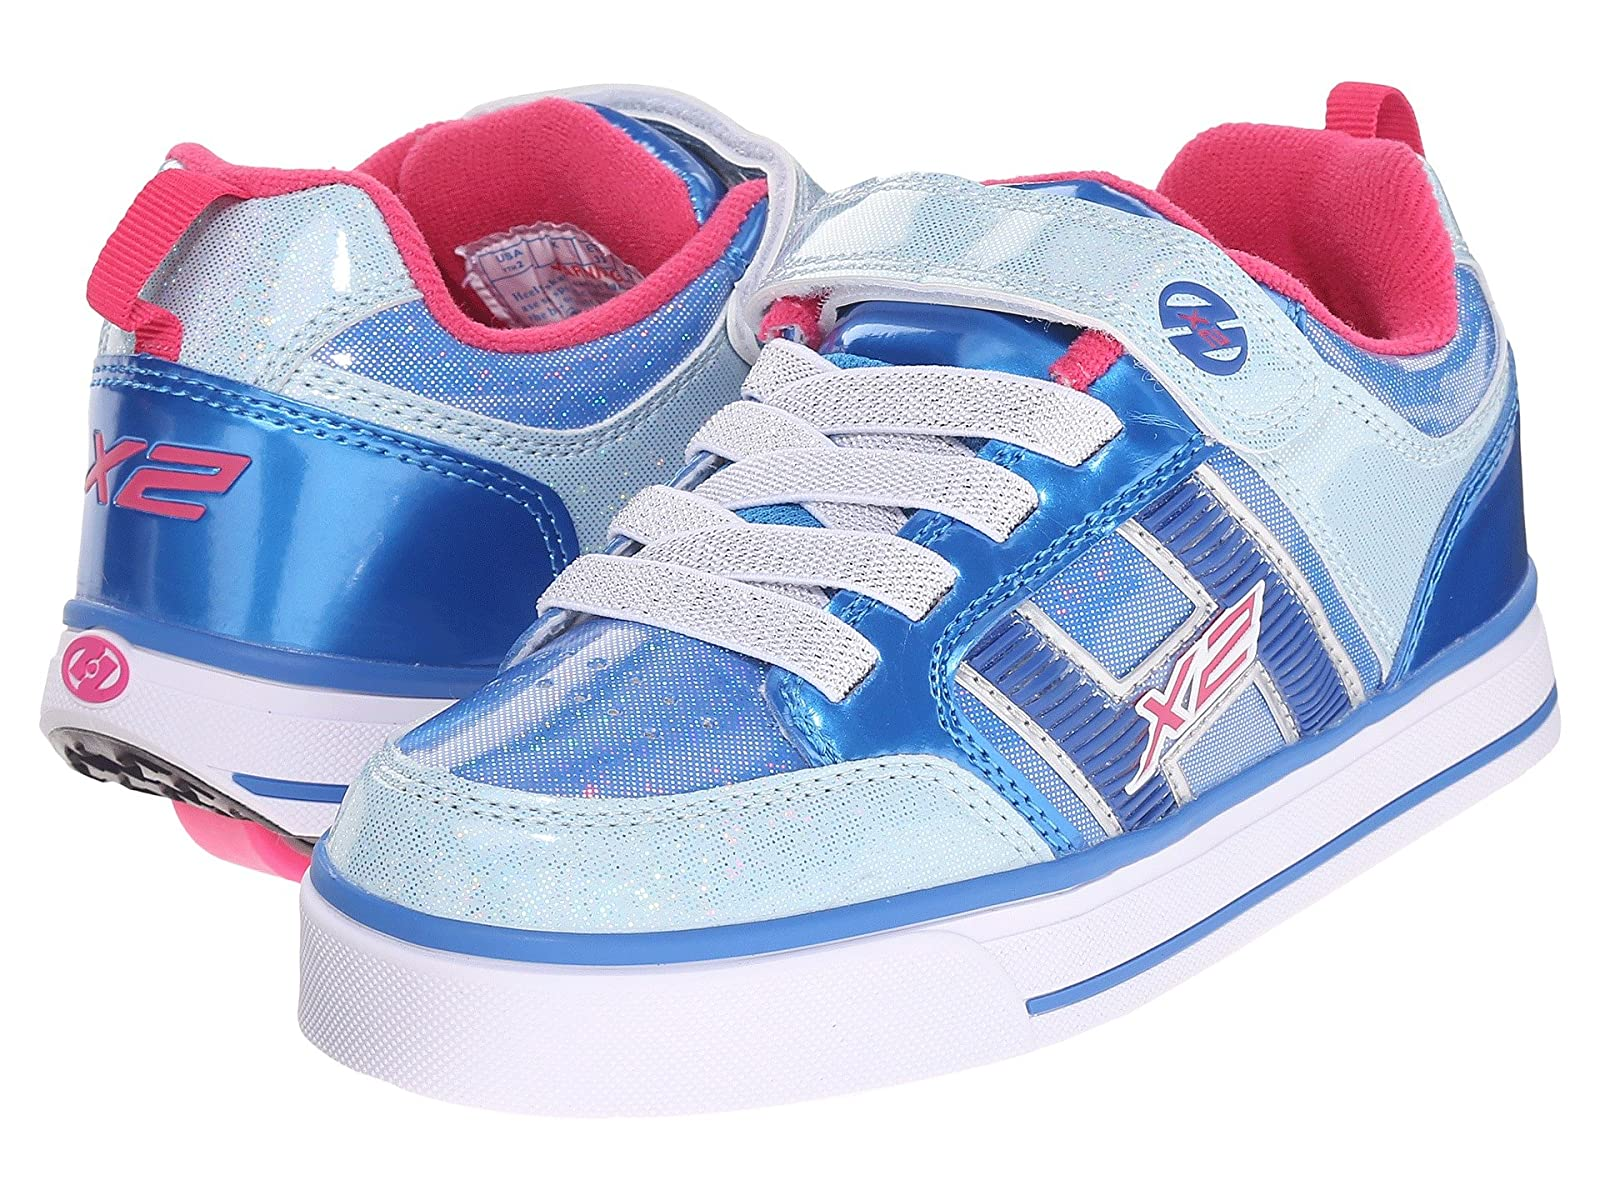 Heelys Bolt Plus X2 (Little Kid/Big Kid)Cheap and distinctive eye-catching shoes